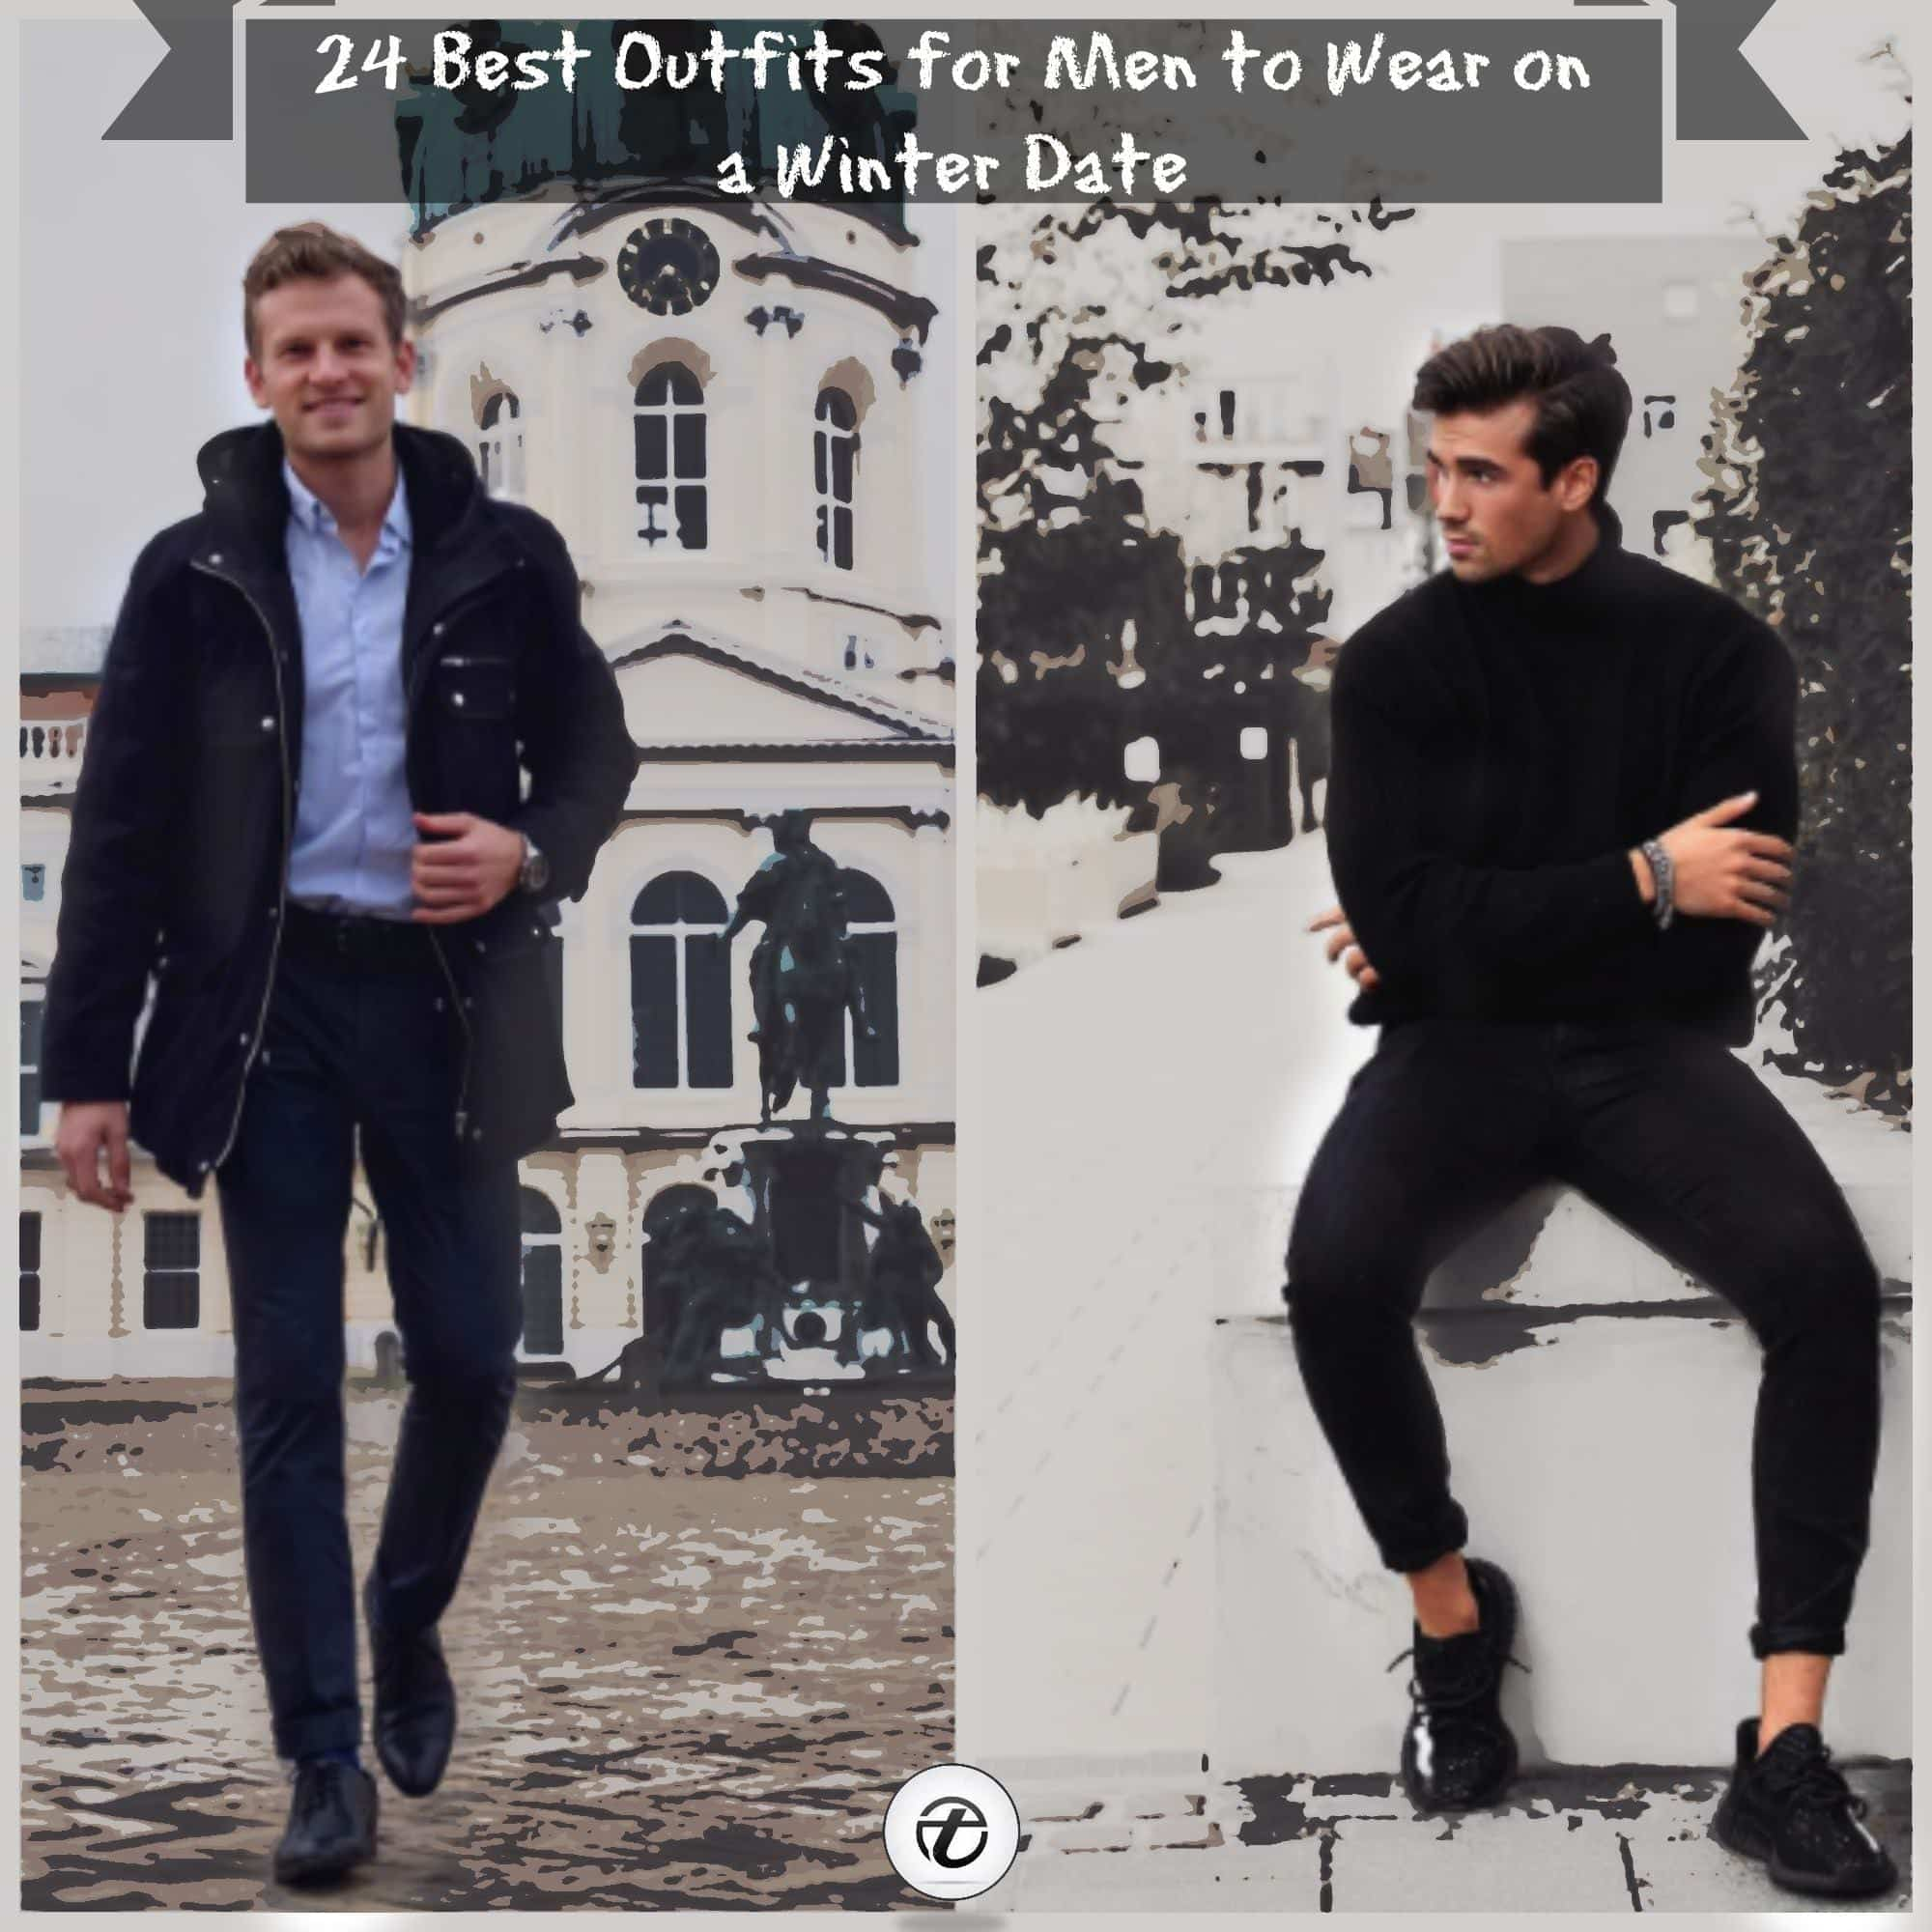 what-to-wear-on-a-winter-date-for-men 24 Sexy Winter Date Outfit Ideas for Guys Your Girl Will Love